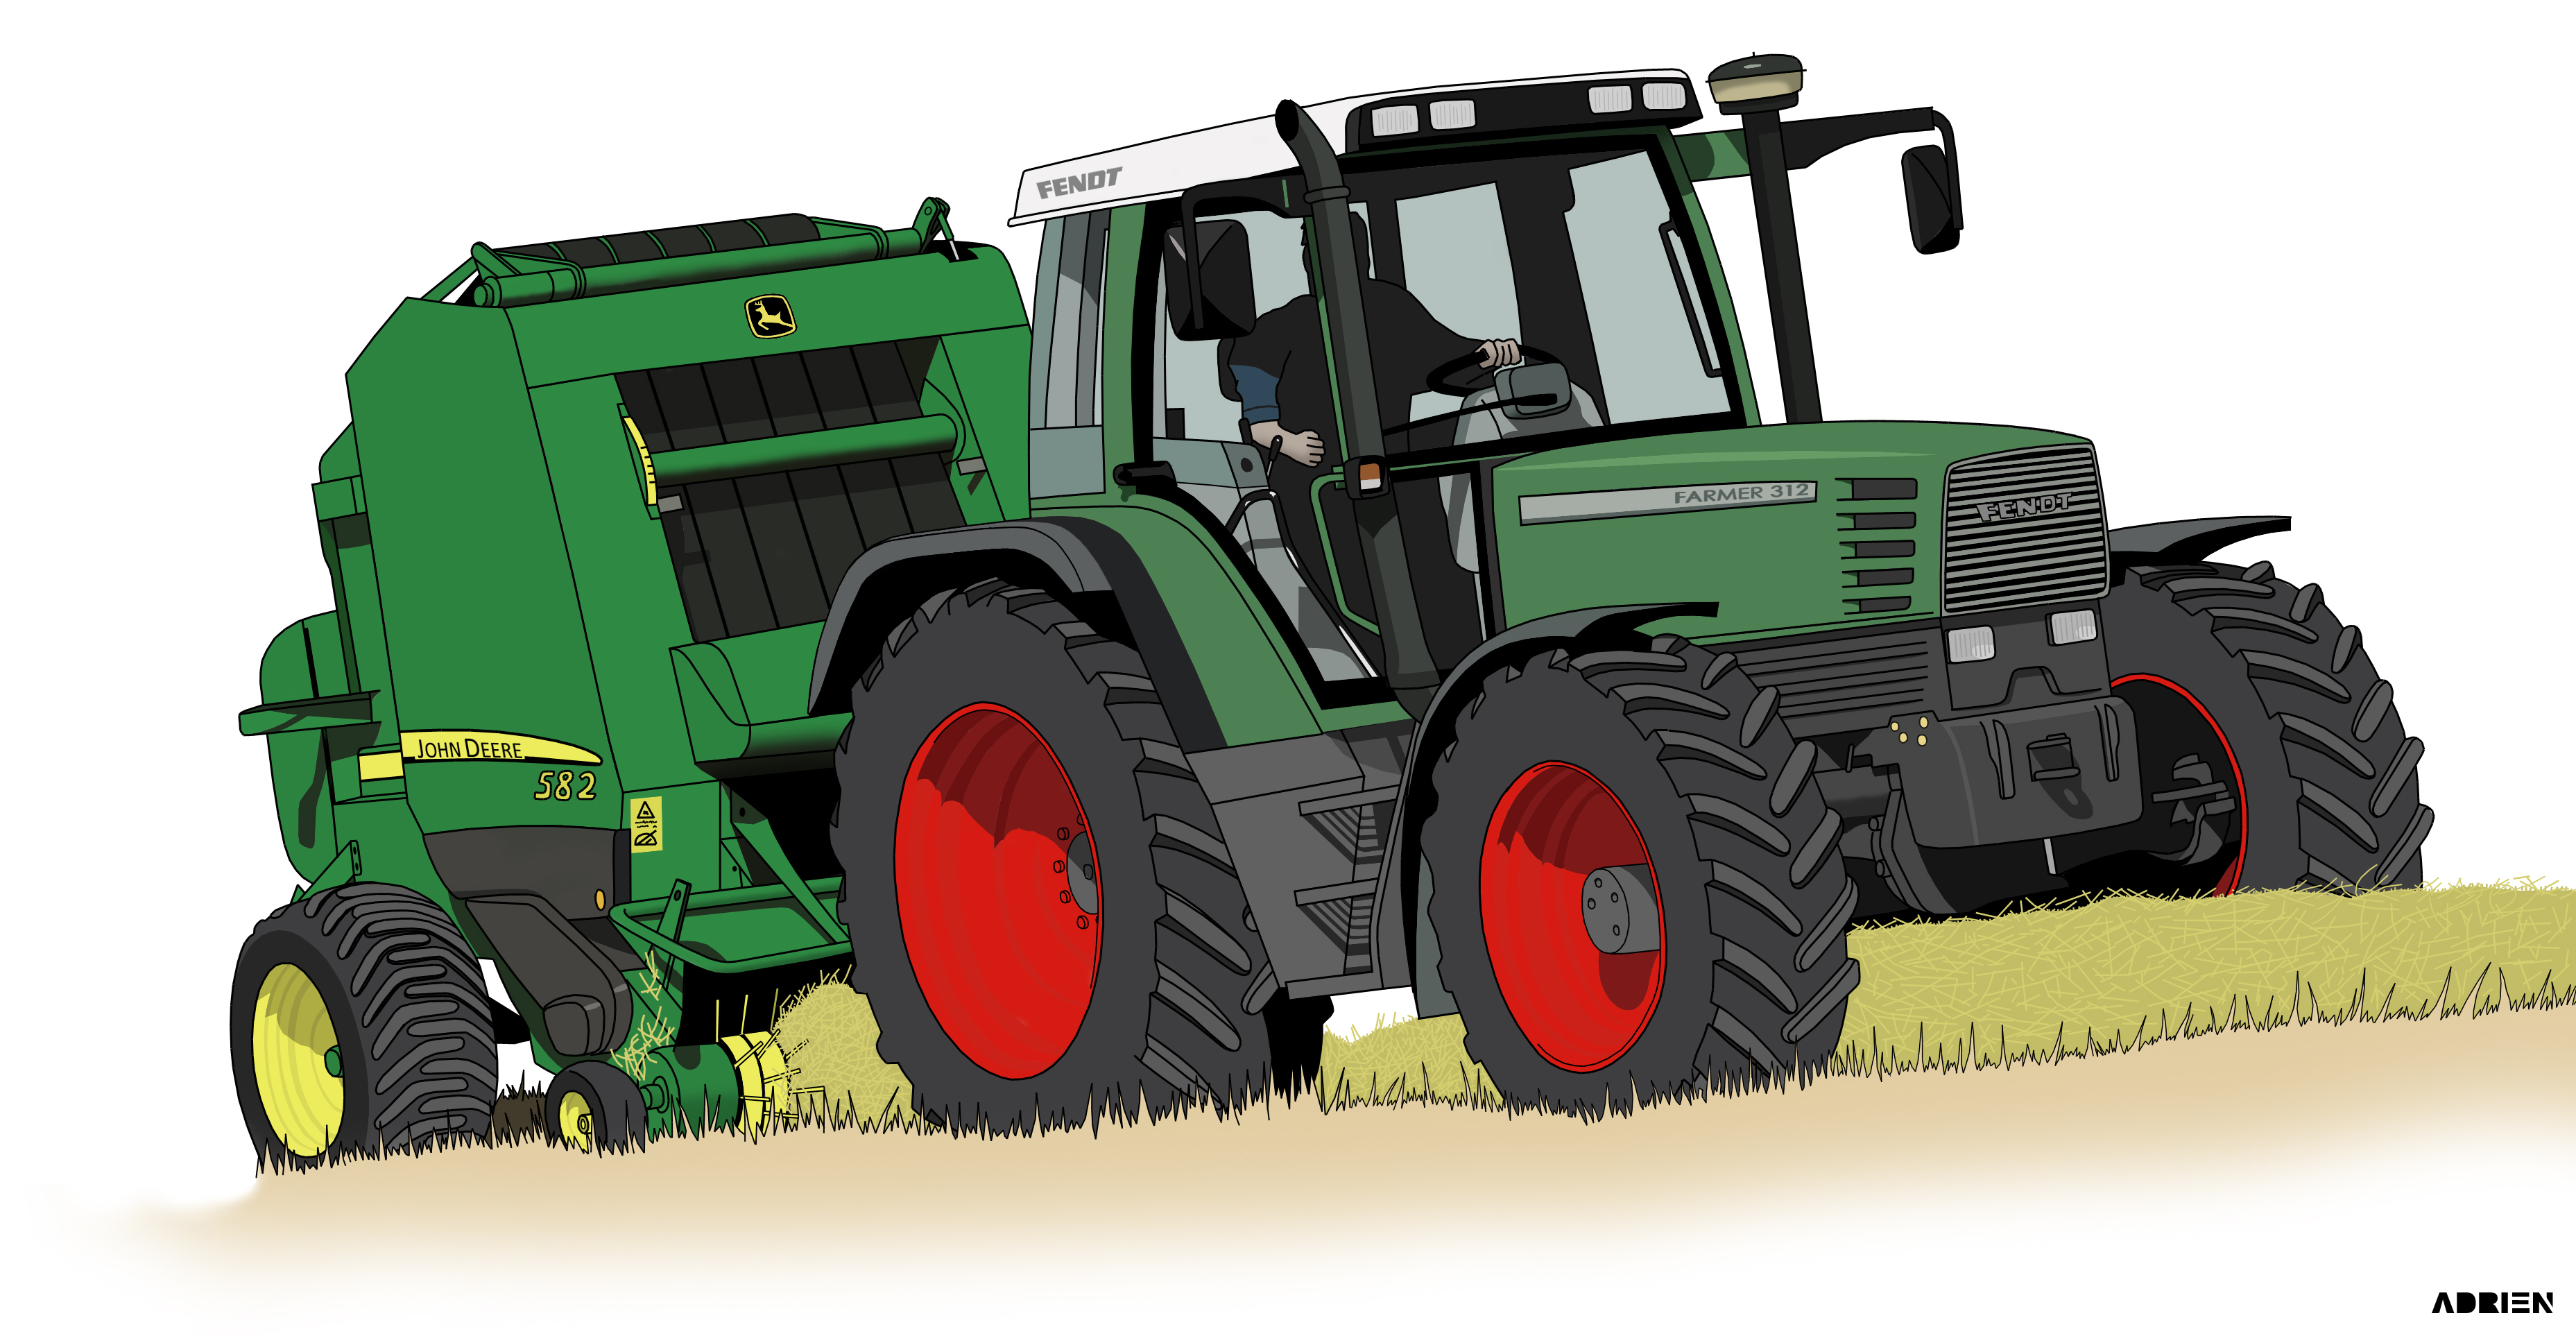 Dessin Fendt Farmer 312   Couleur sur Photoshop de Adrien72140